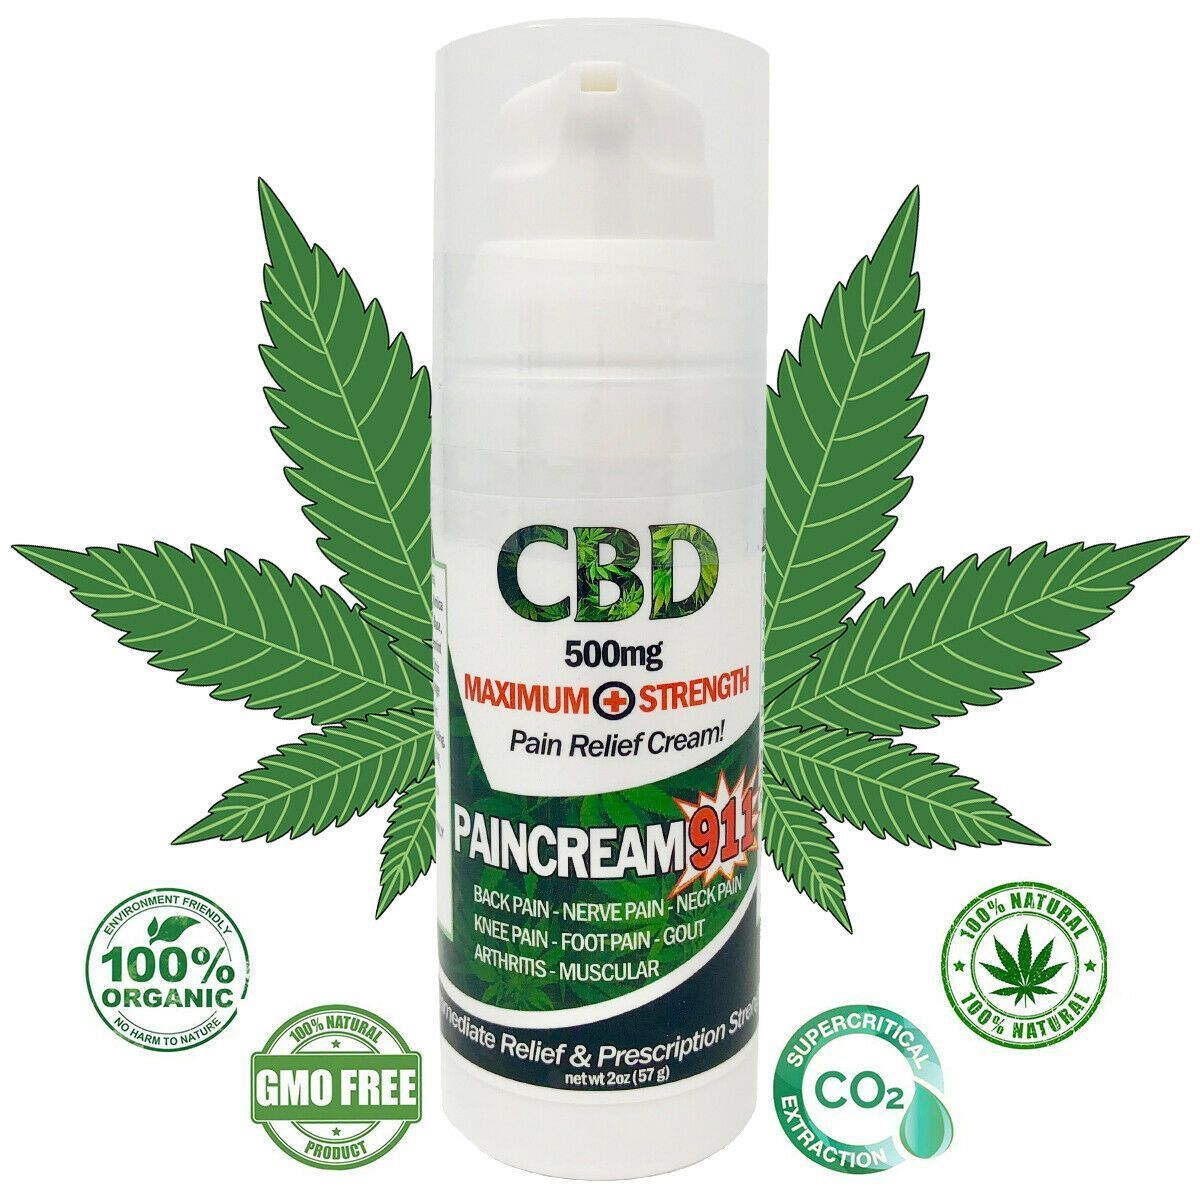 CBD TOPICAL PAIN CREAM Back, Tendinitis